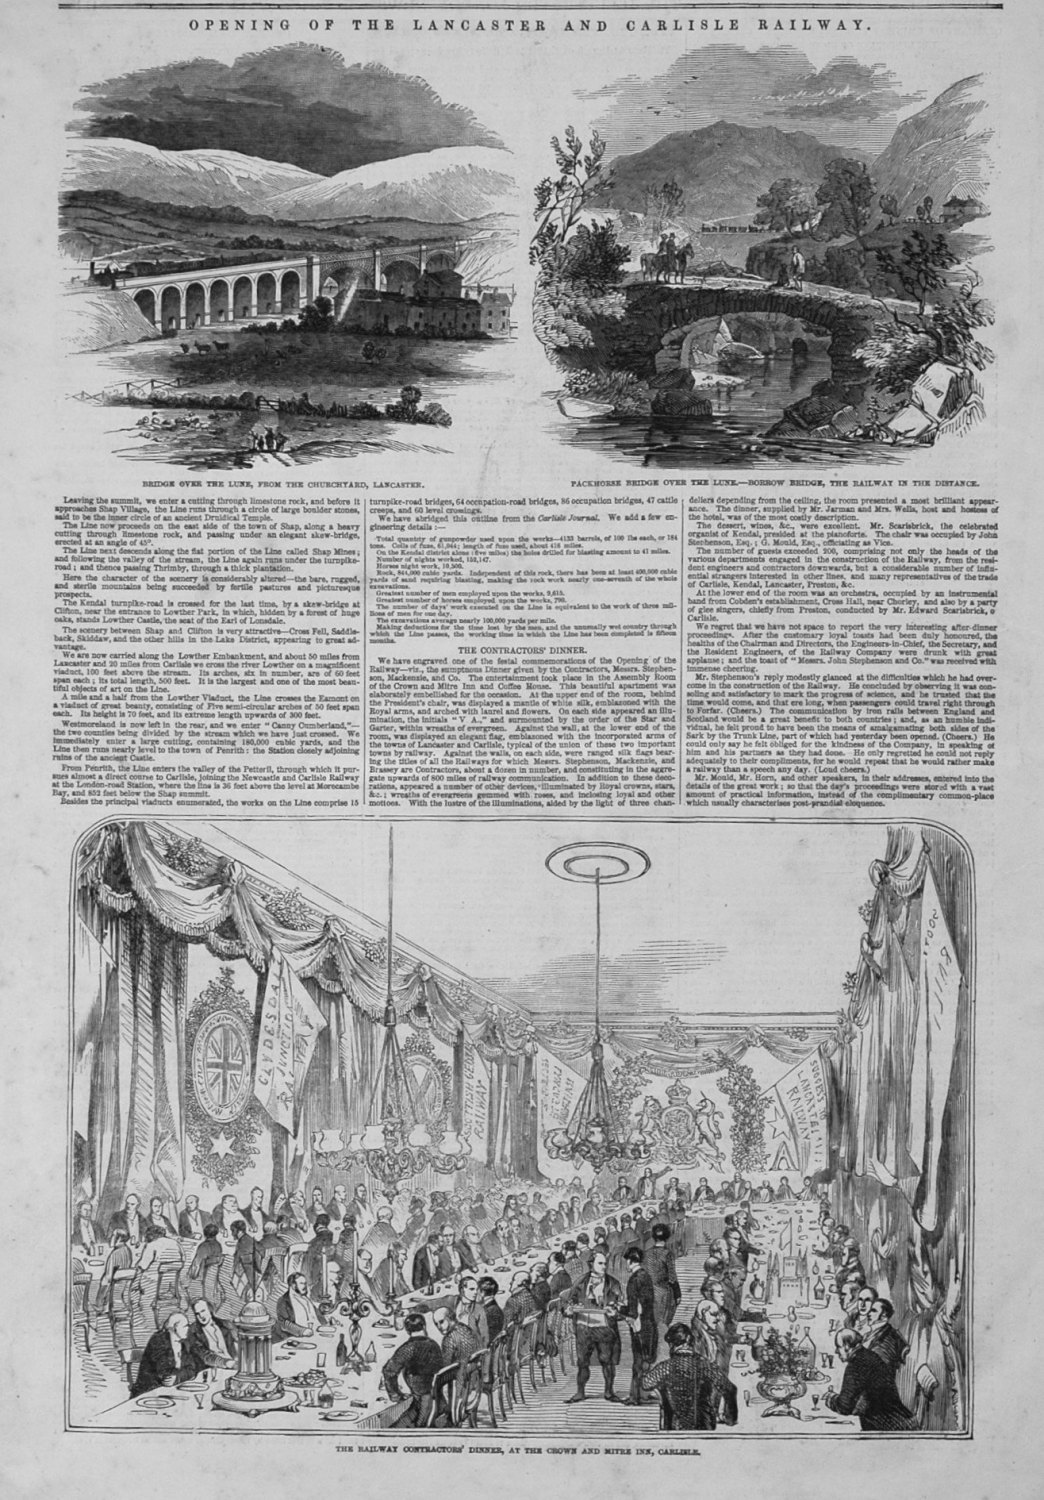 Opening of the Lancaster and Carlisle Railway. 1846